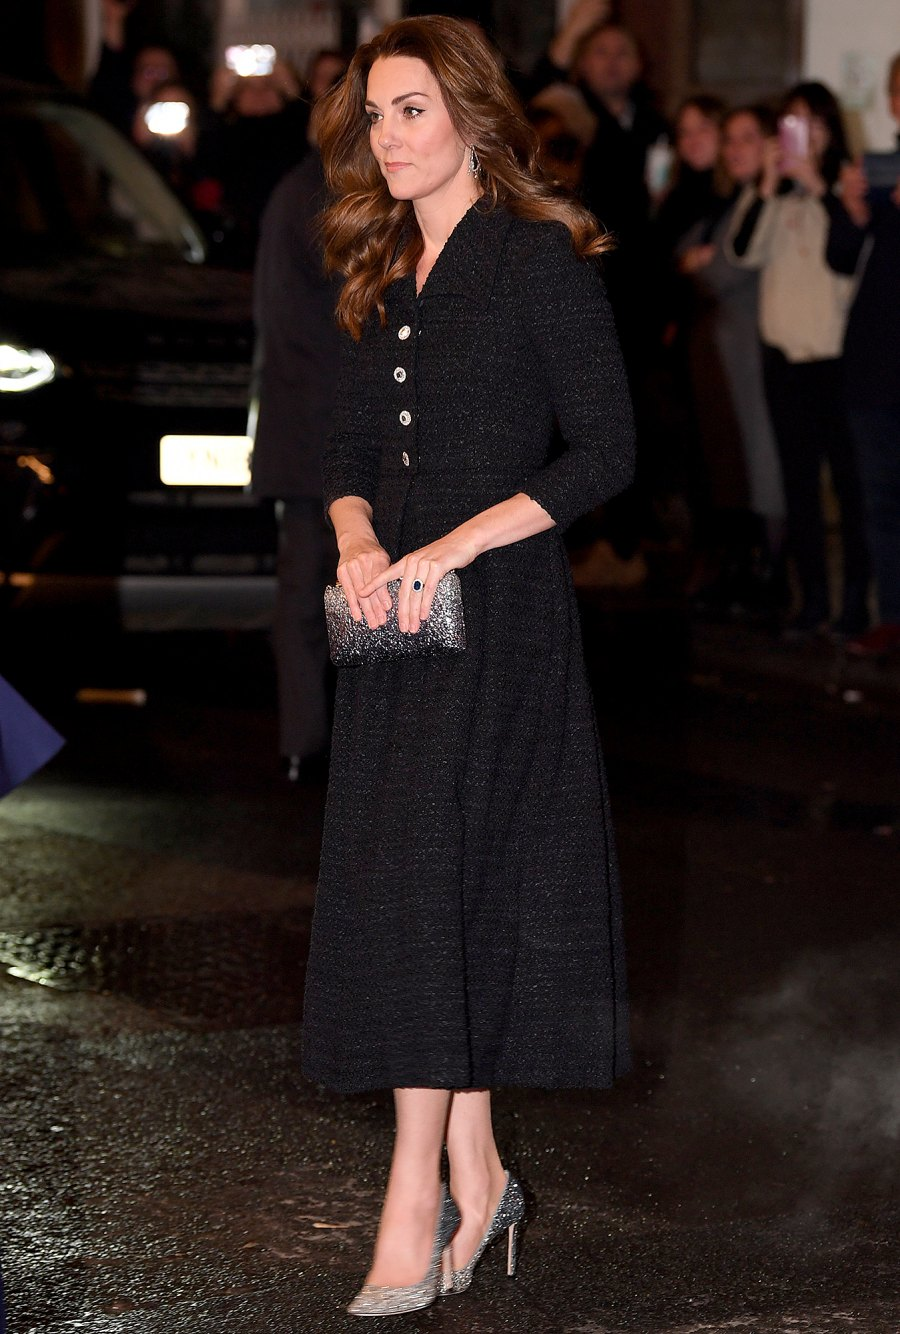 Prince-William-and-Duchess-Kate-Get-Glammed-Up-for-Charity-Performance-of-'Dear-Evan-Hansen'-2